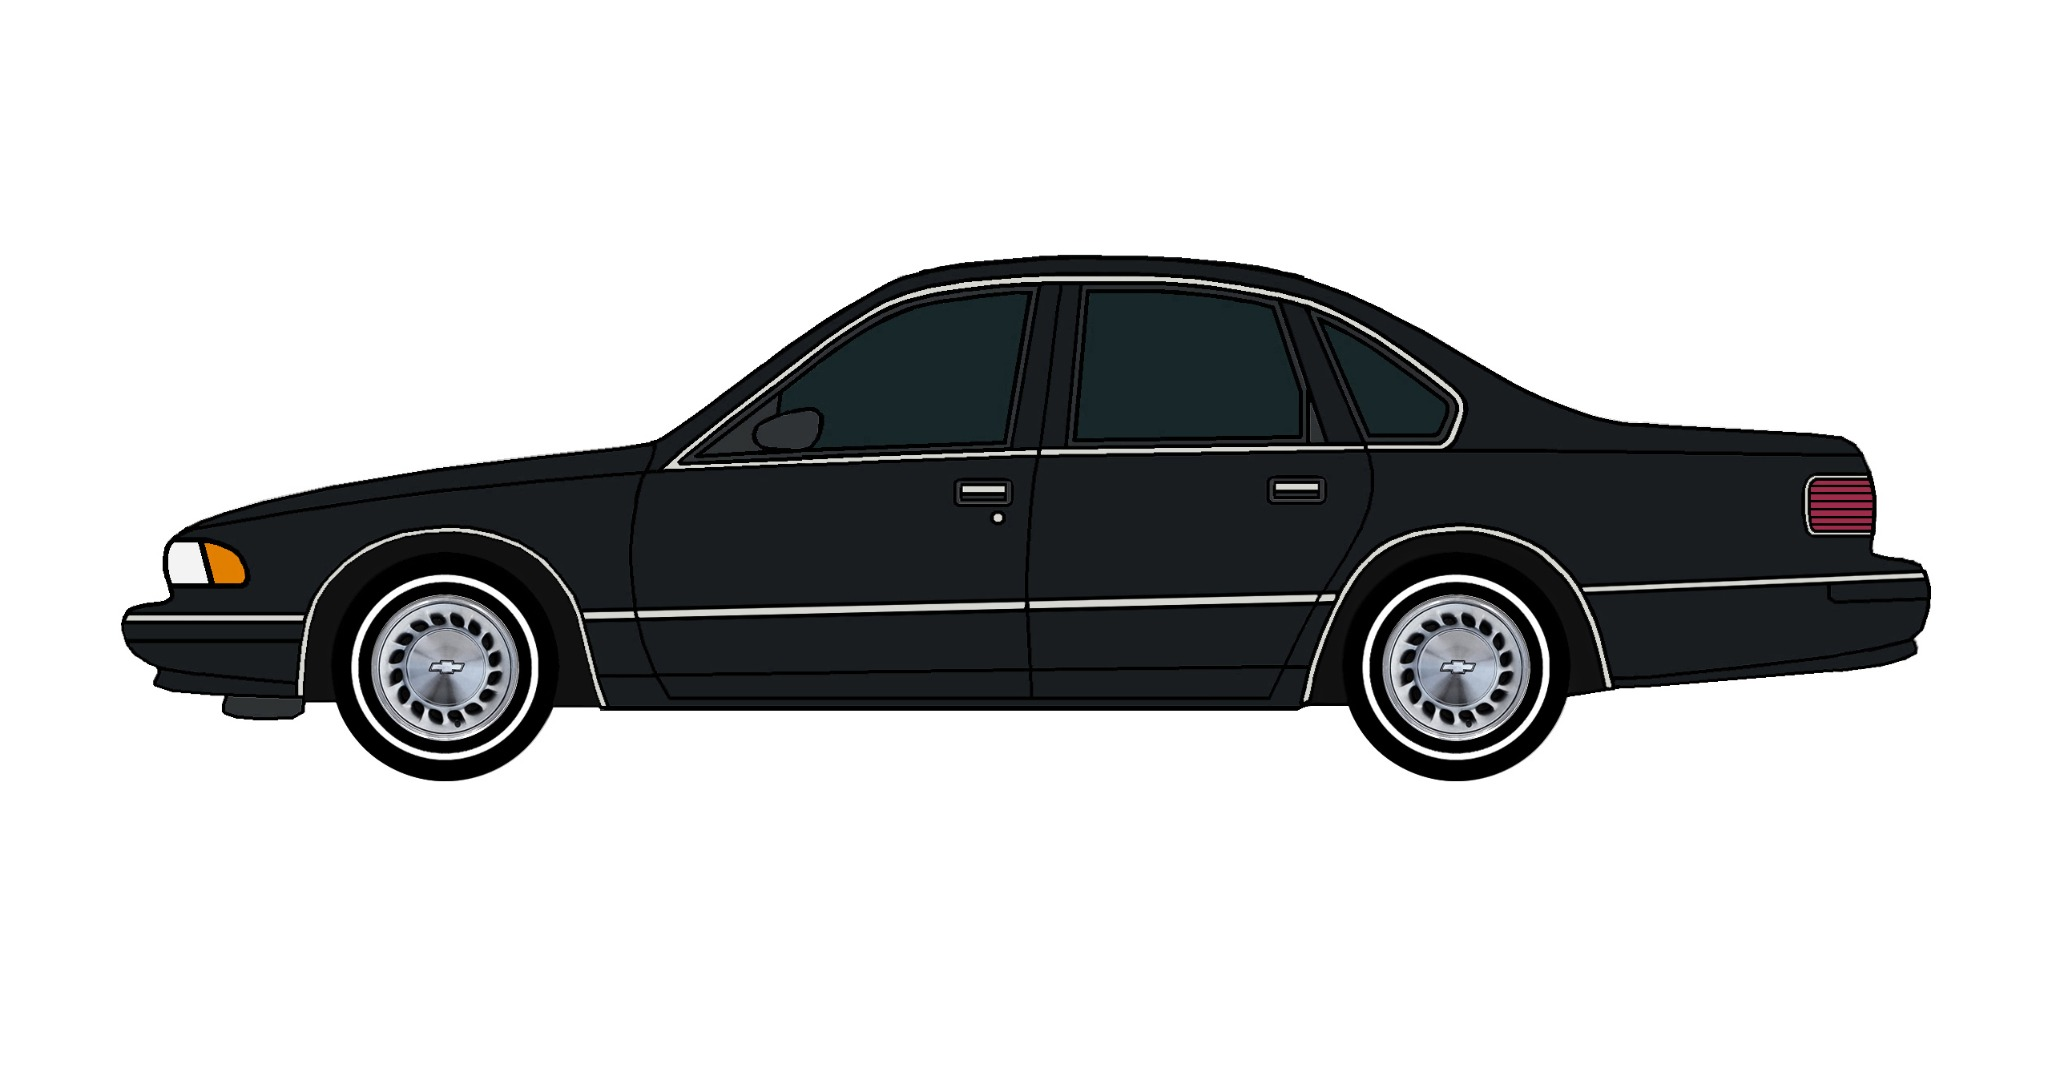 1996 Chevy Caprice BLACK